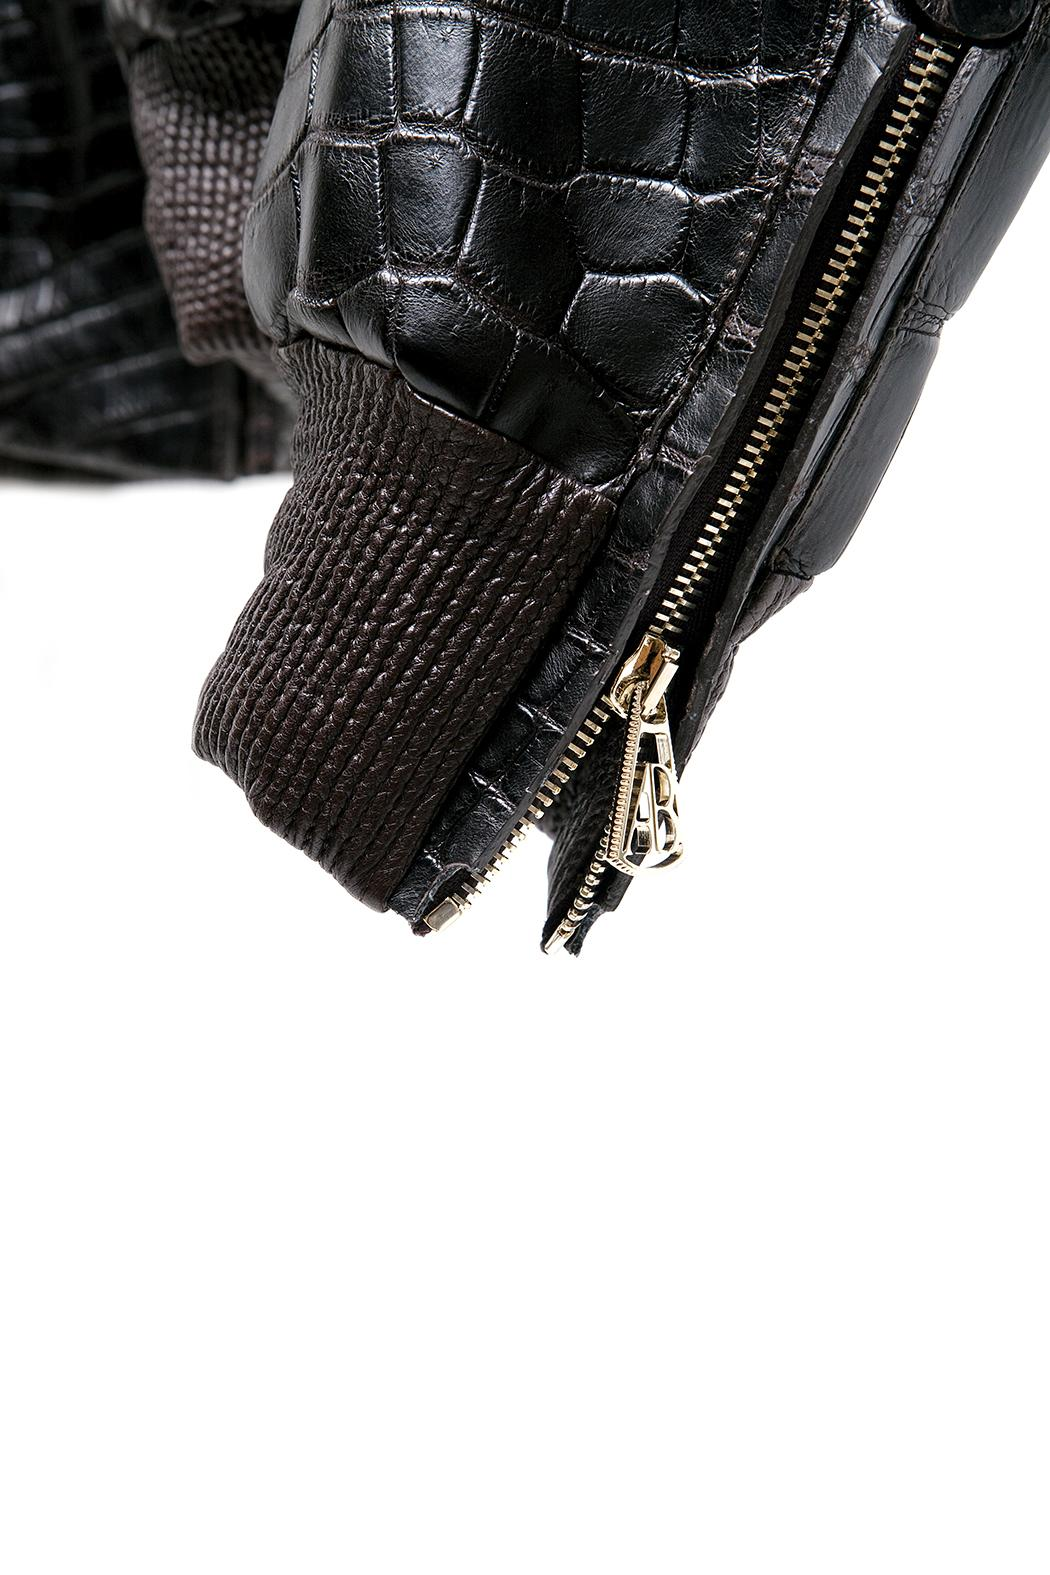 elite luxury accessories cuff detail